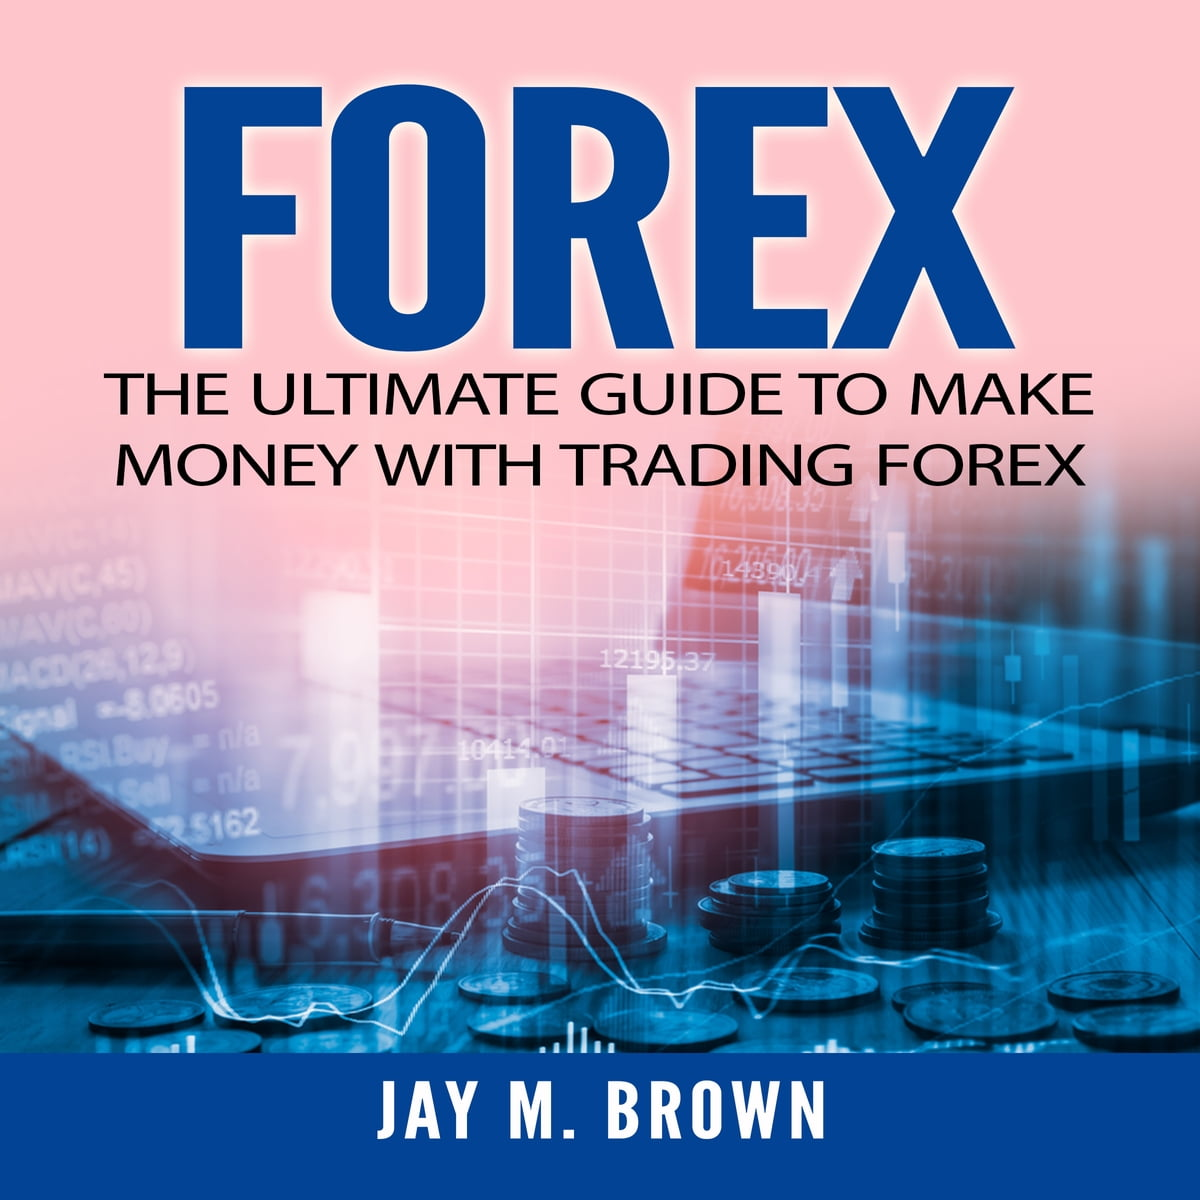 The ultimate forex handbook